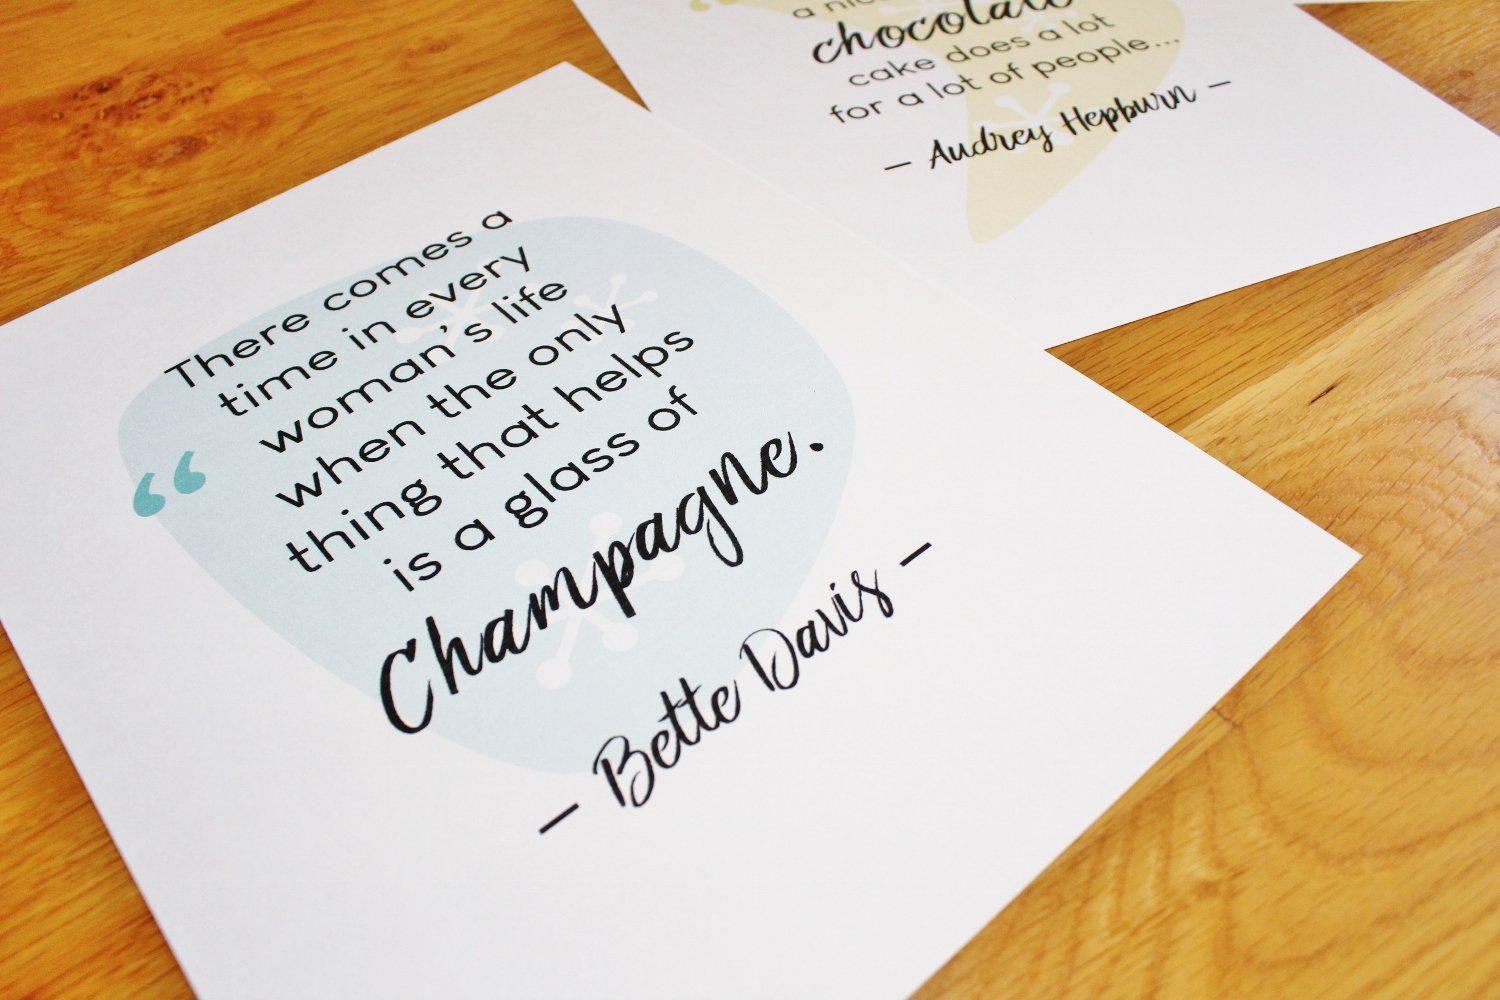 Retro printables with Bette Davis and Audrey Hepburn quotes